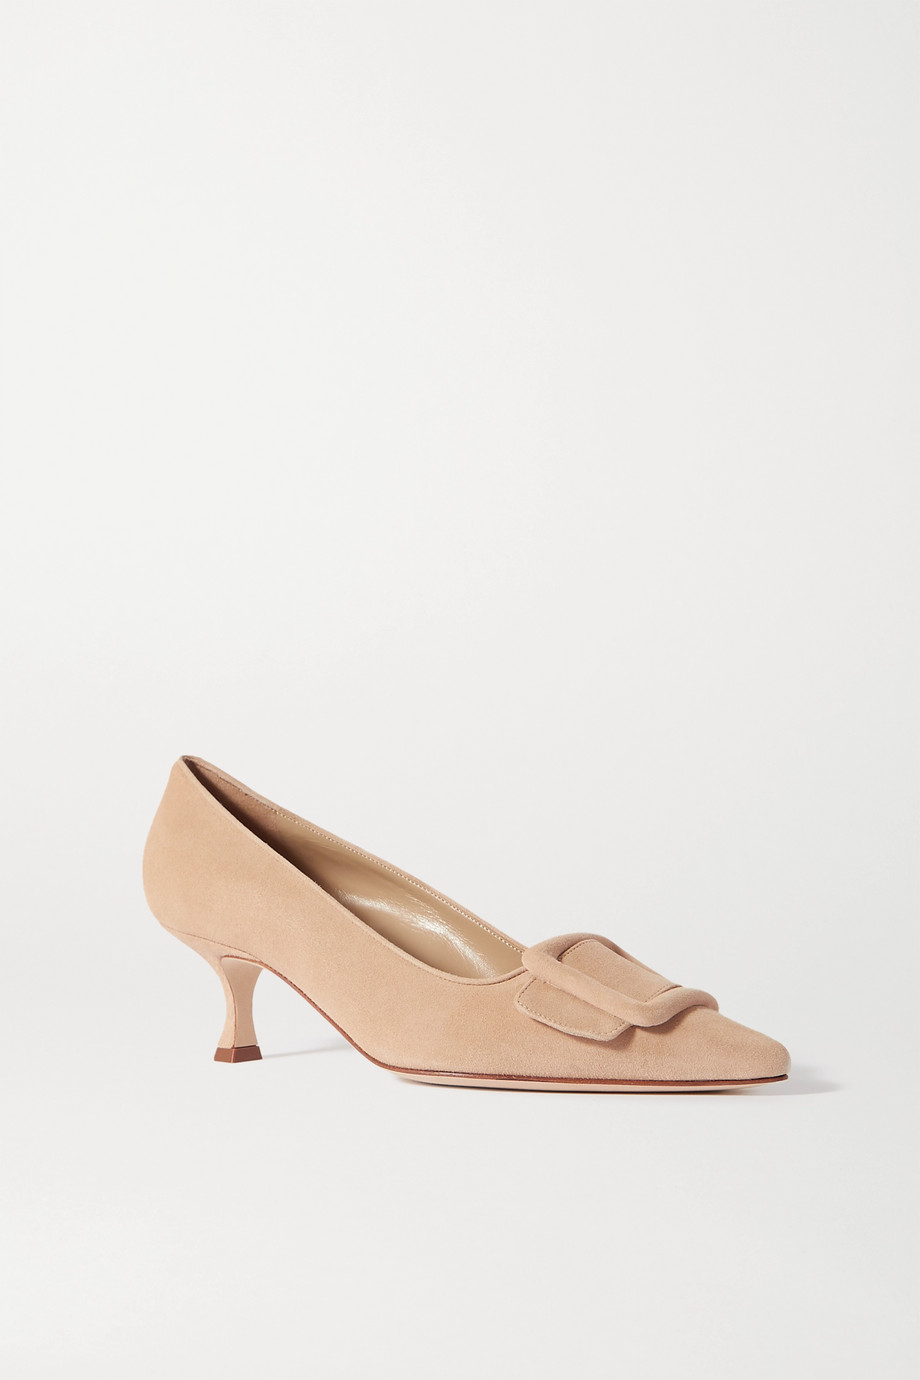 Manolo Blahnik Maysale buckled suede pumps